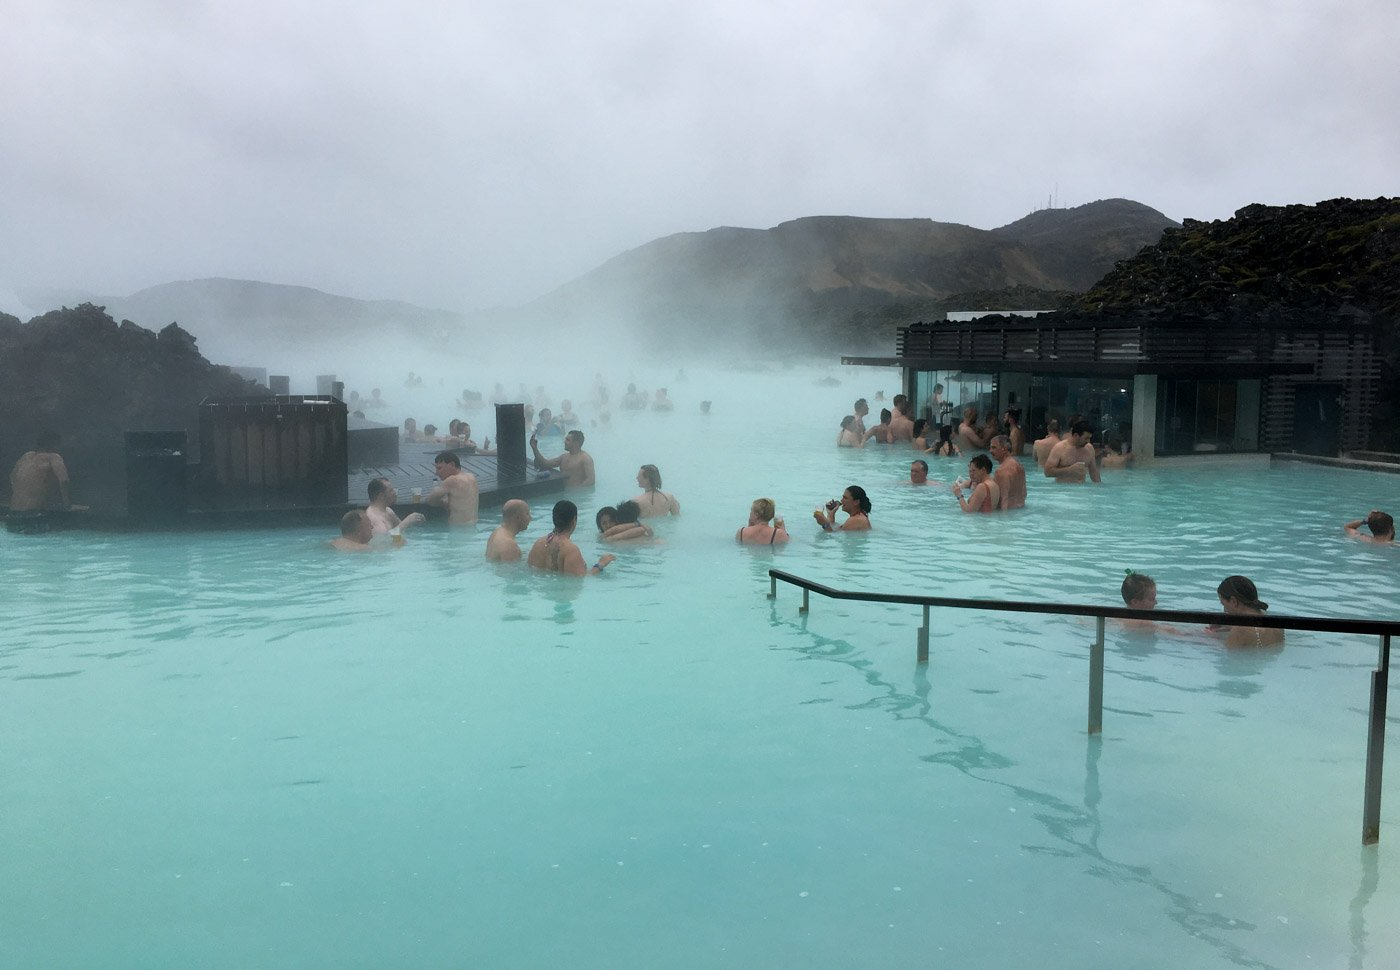 If you're planning a trip to Iceland and making a stop at this unique place, here are 21 important things to know before you visit the Blue Lagoon.